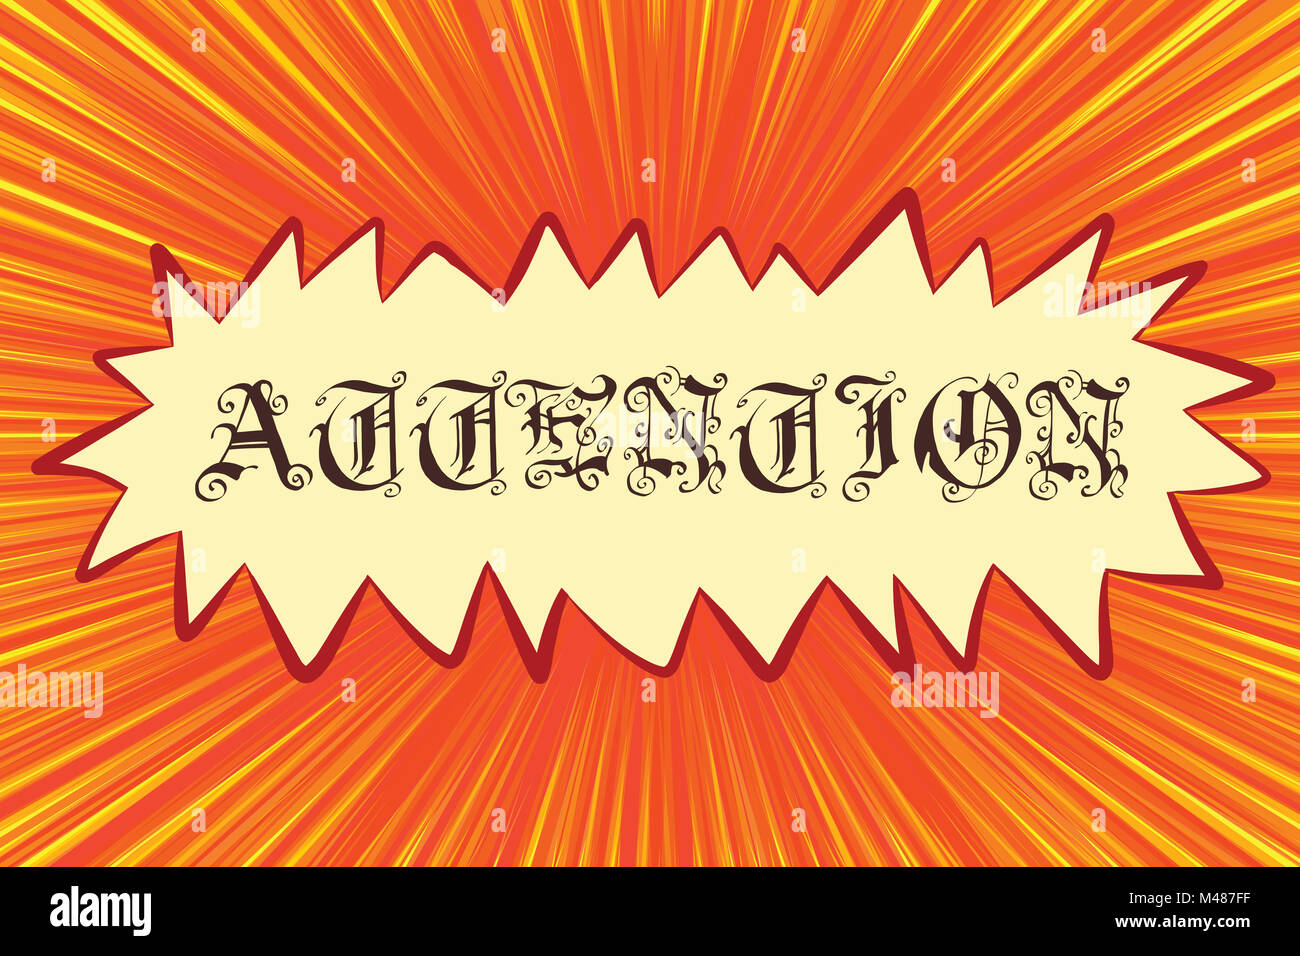 Attention Gothic font lettering - Stock Image